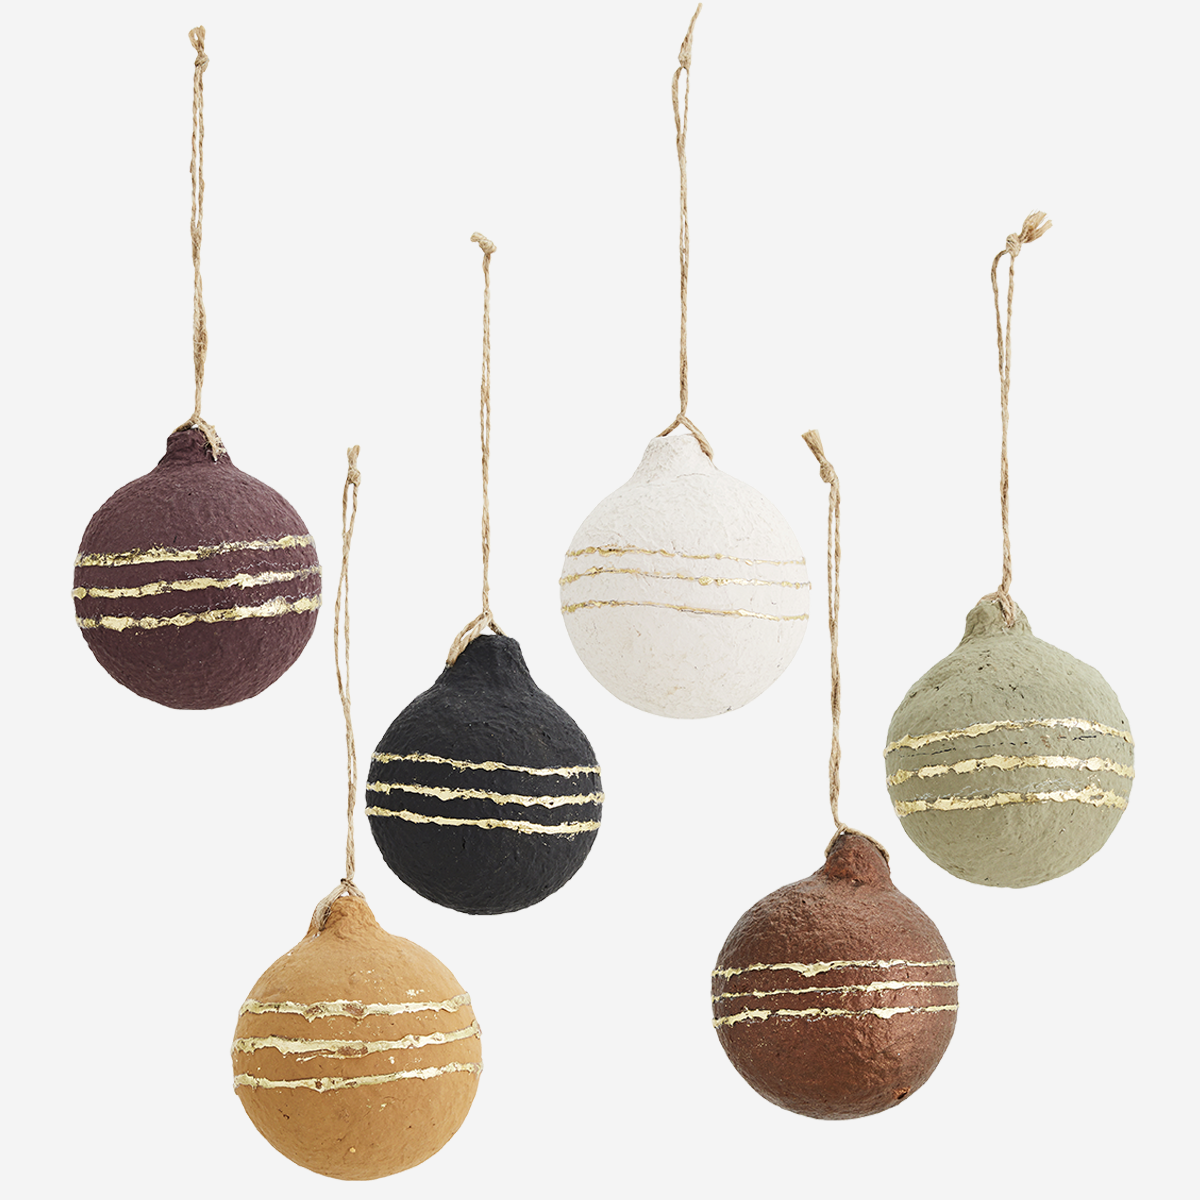 Hanging cotton paper balls